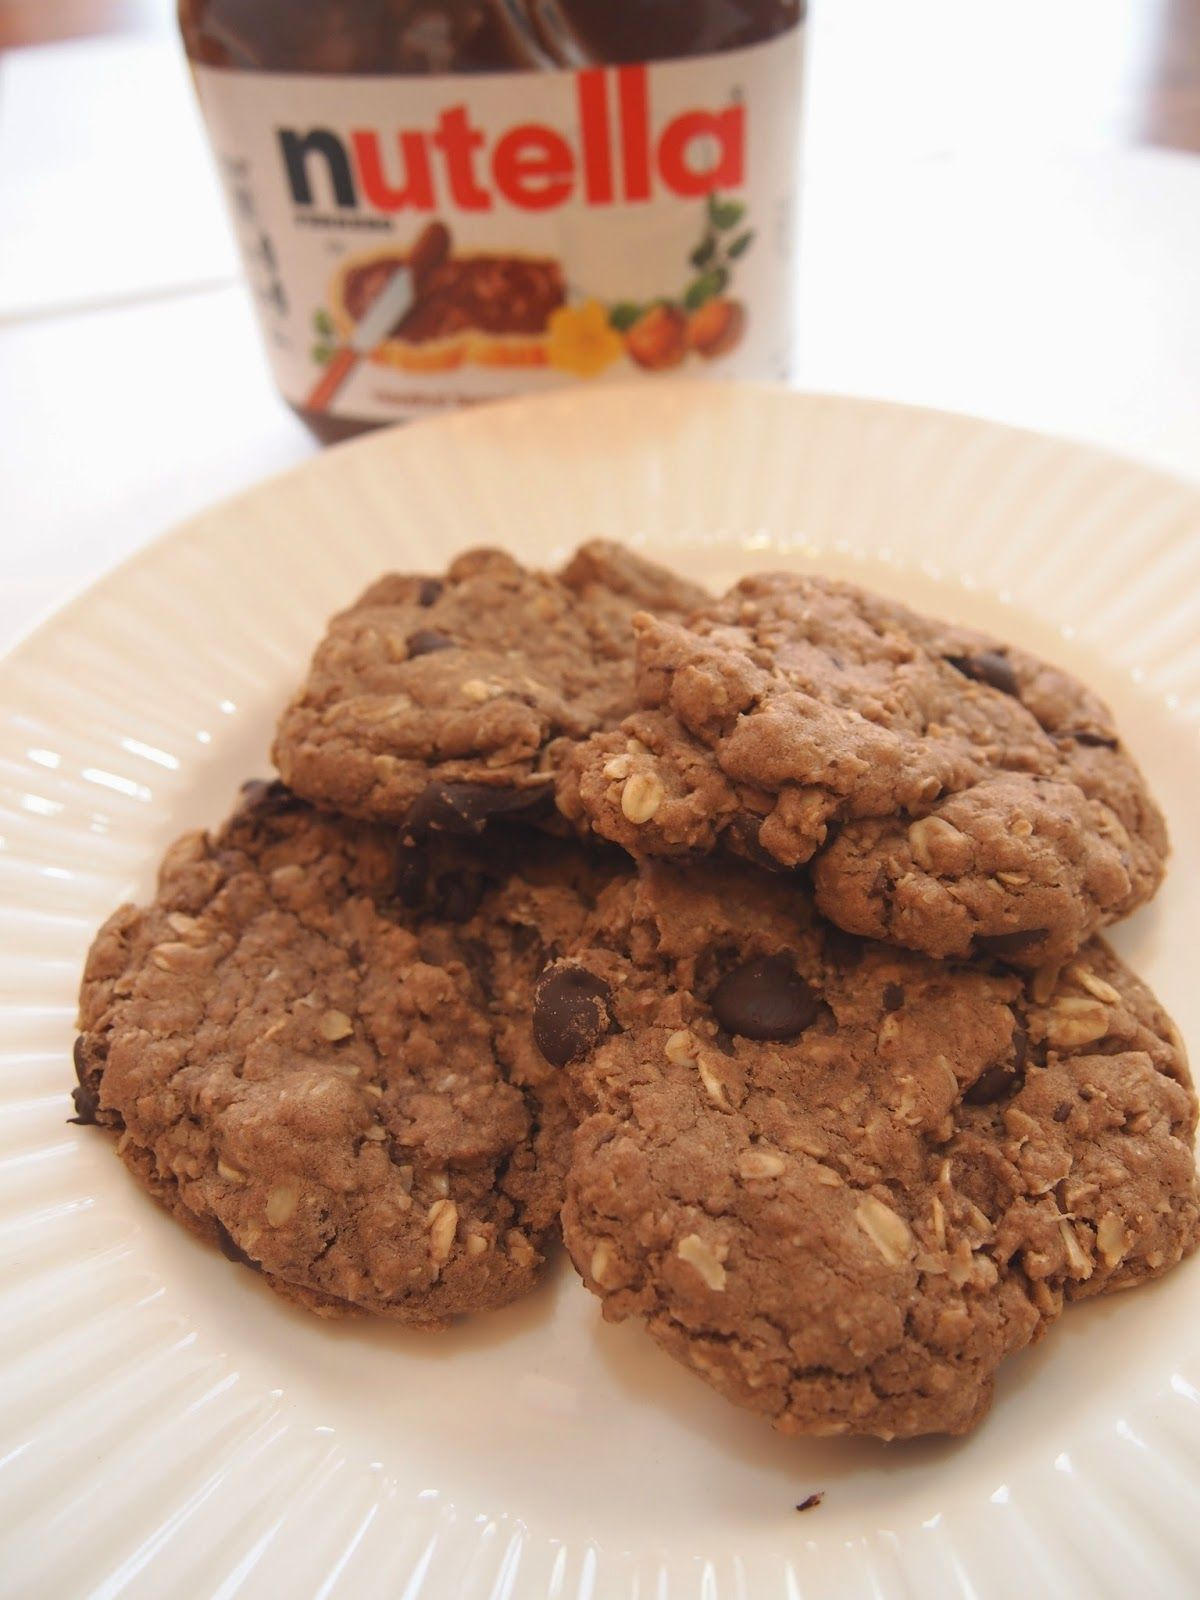 Gluten Free Desserts made Delicious: Nutella Oatmeal Chocolate Chip Cookies #chocolates #sweet #yummy #delicious #food #chocolaterecipes #choco